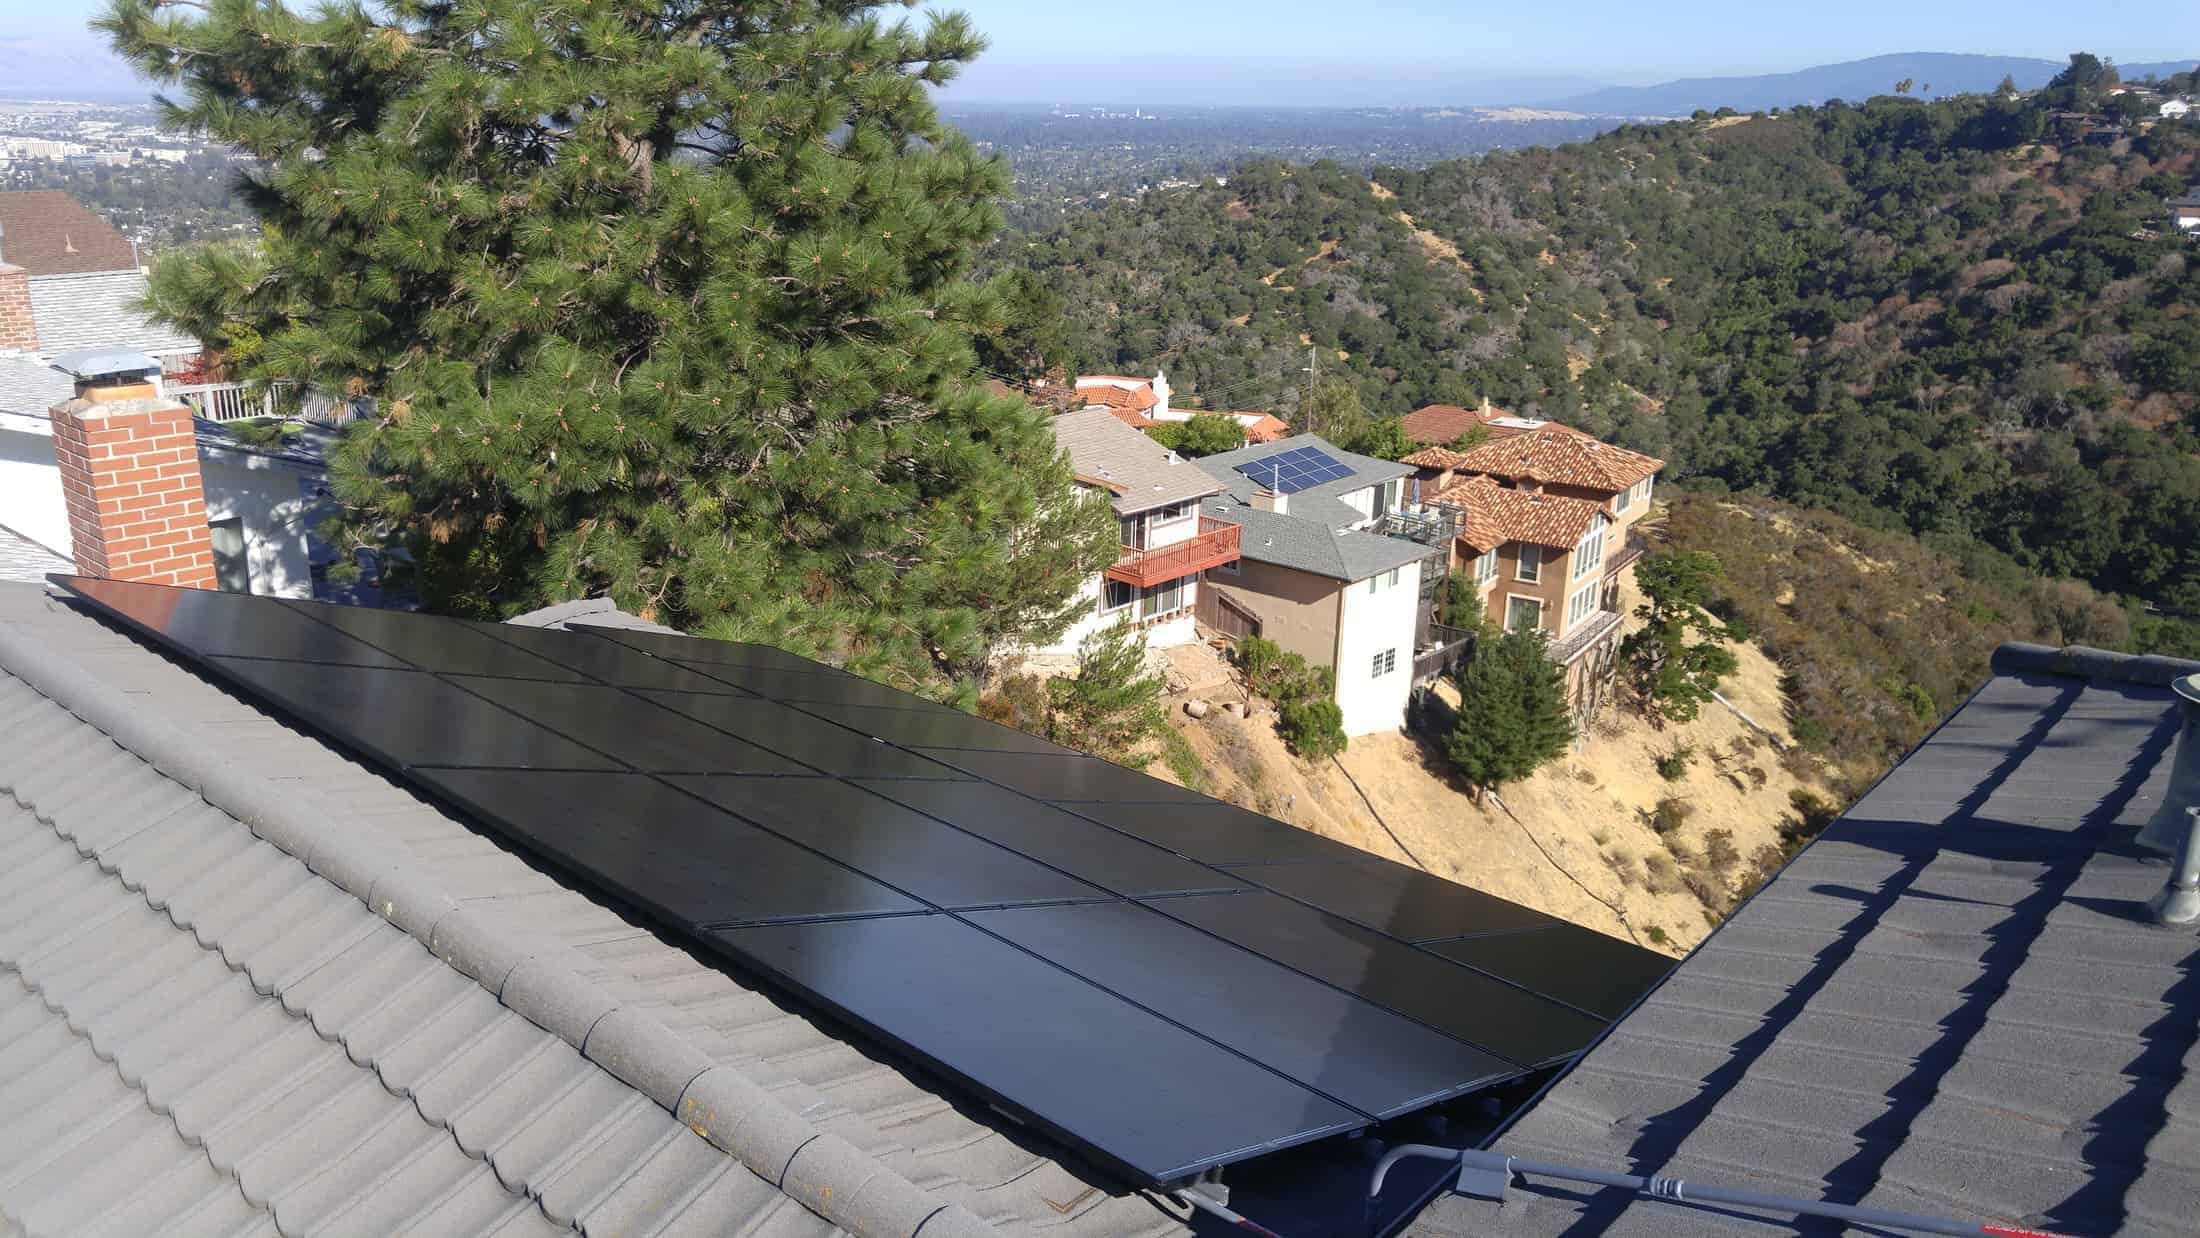 A solar installation by Michael & Sun Solar on a roof consisting of concrete tiles.